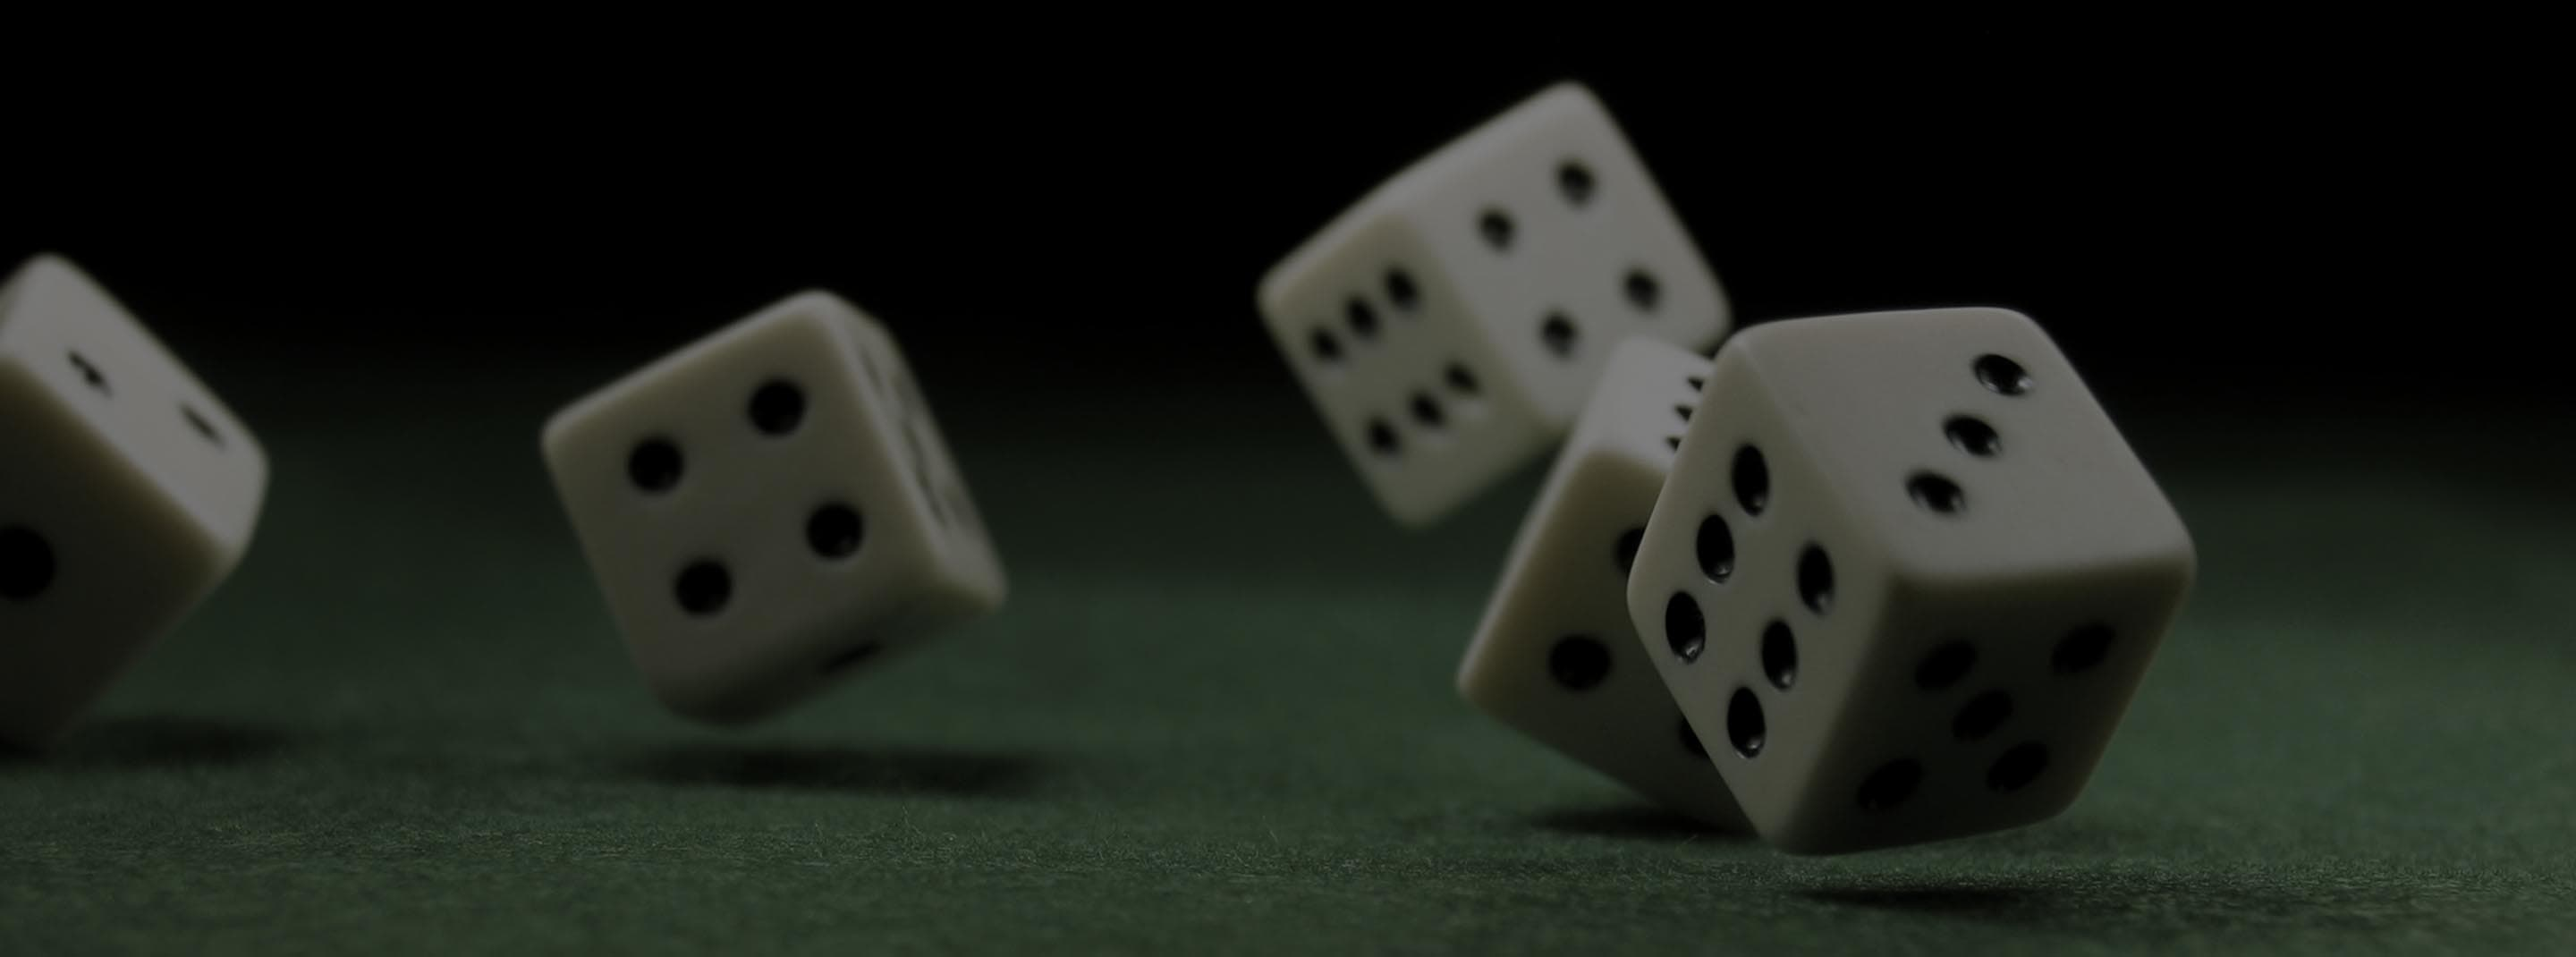 Rolling dice on games table